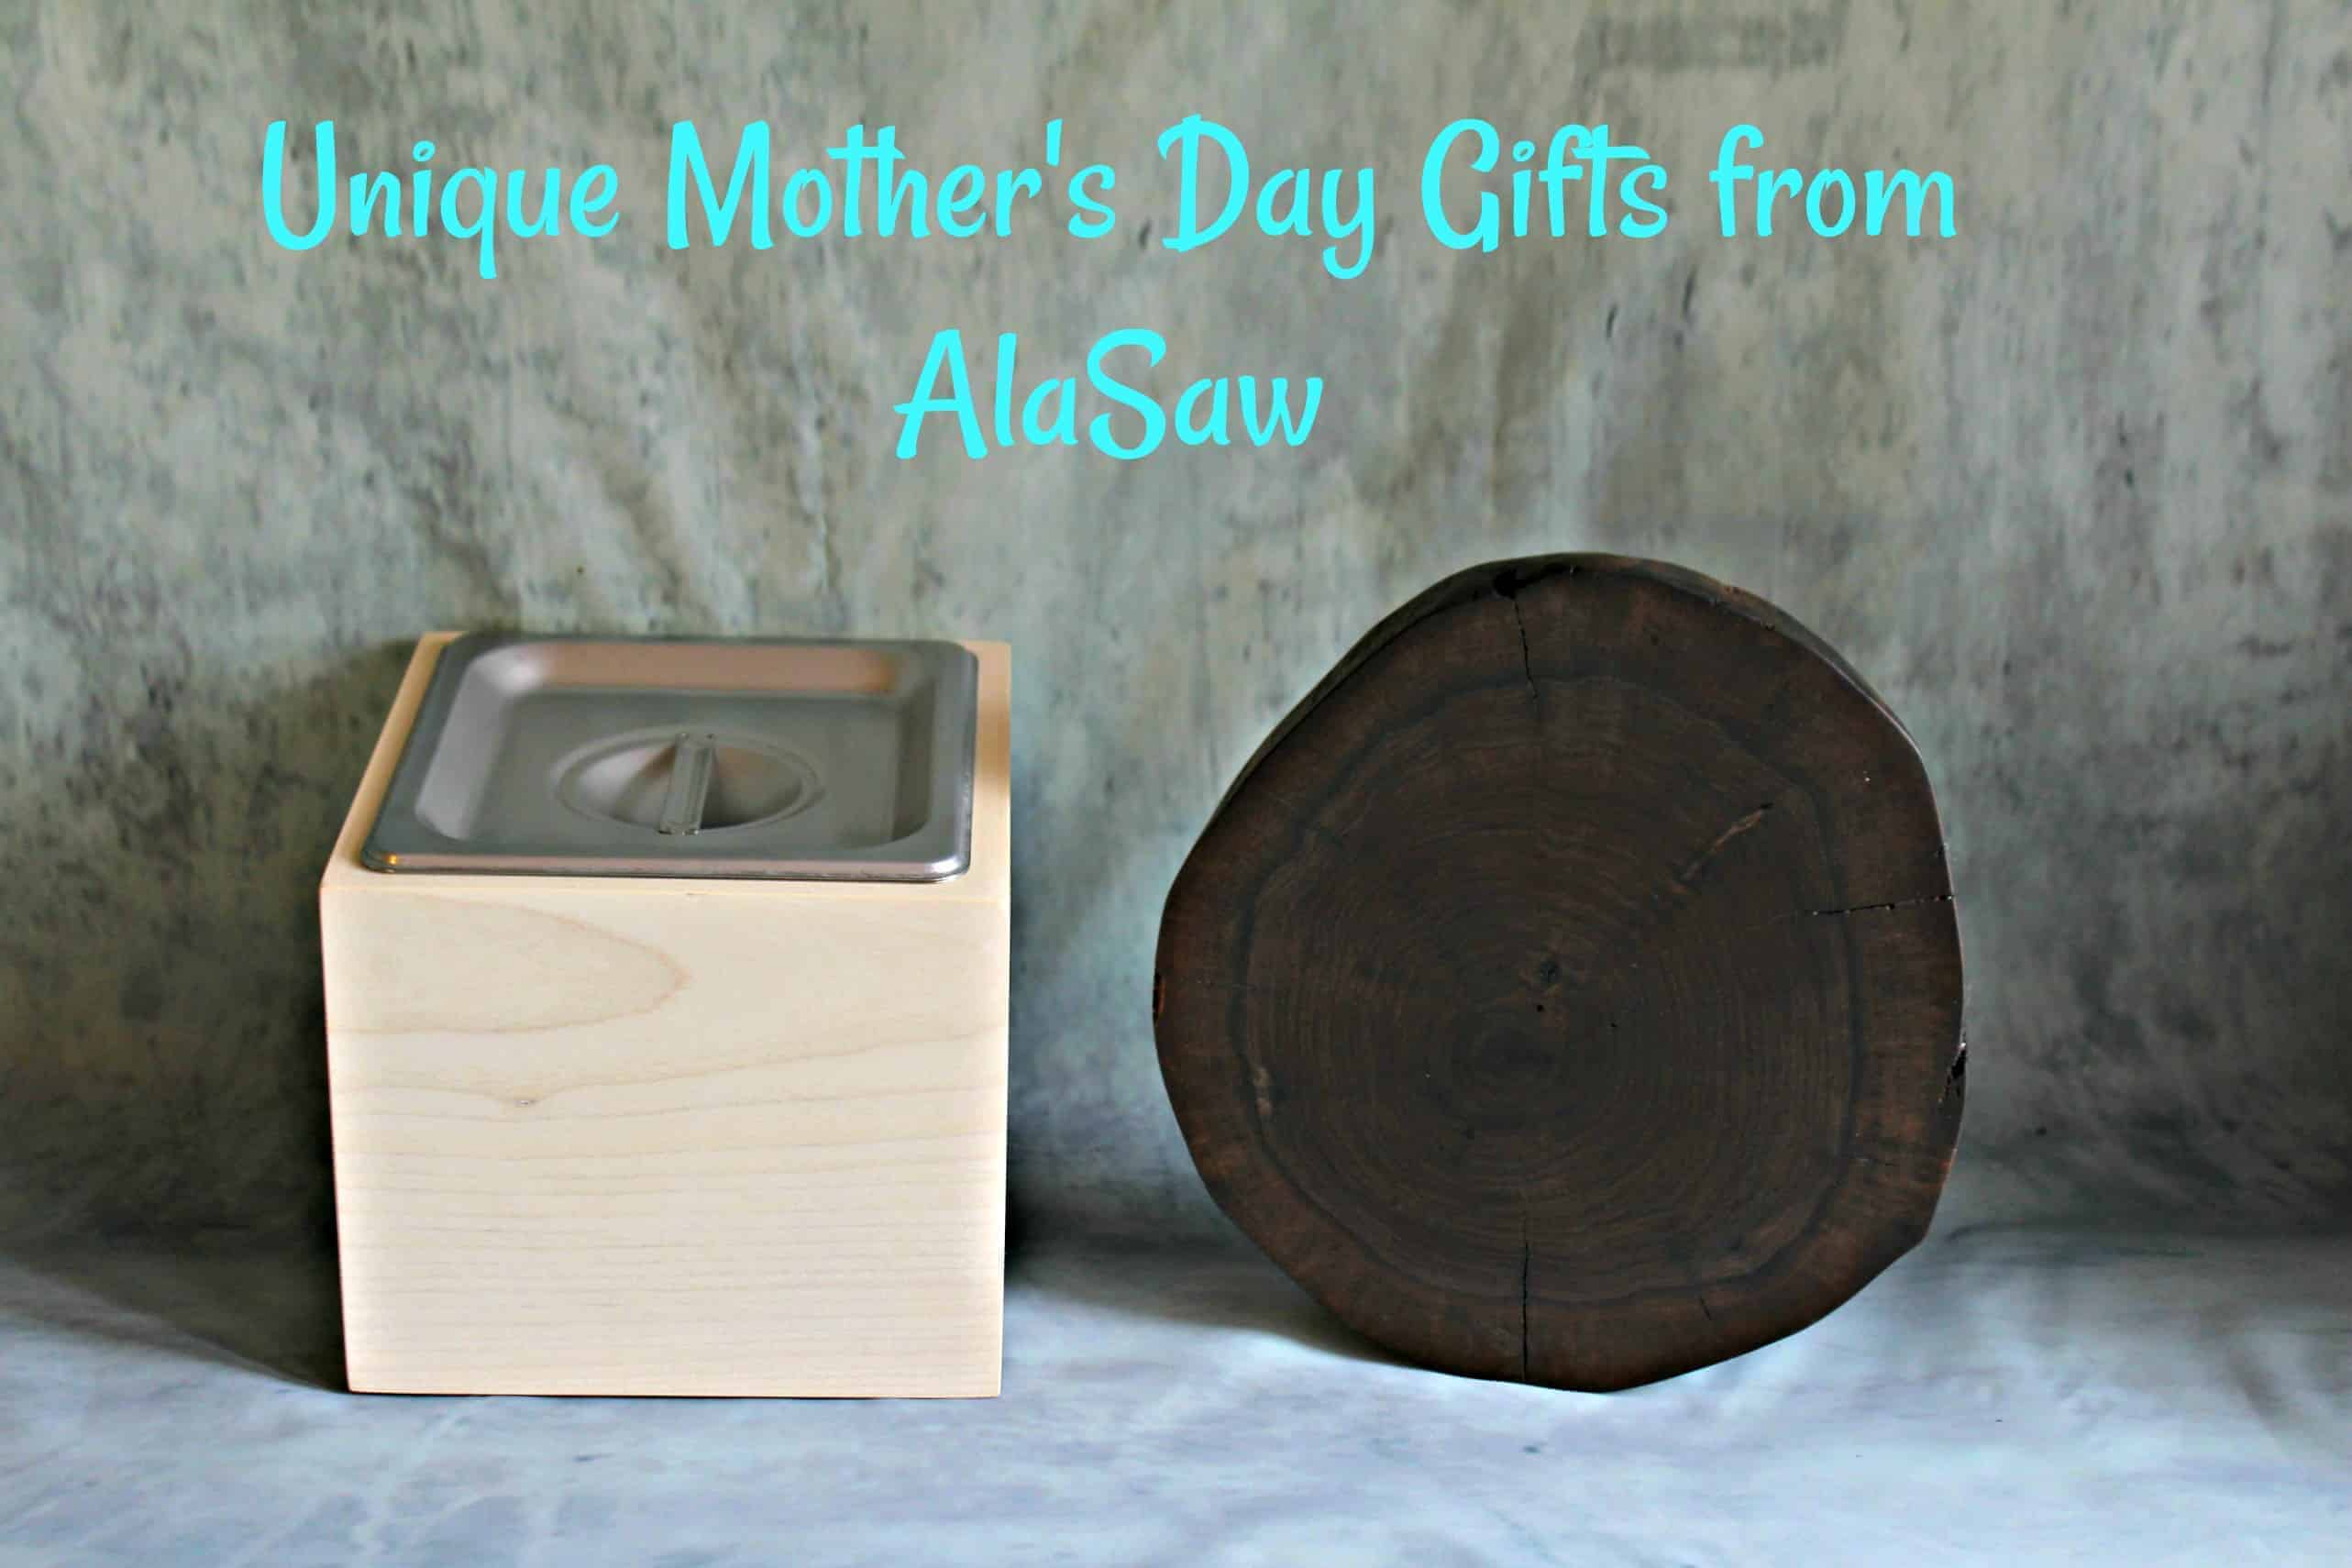 Unique Mother's Day Gifts from AlaSaw